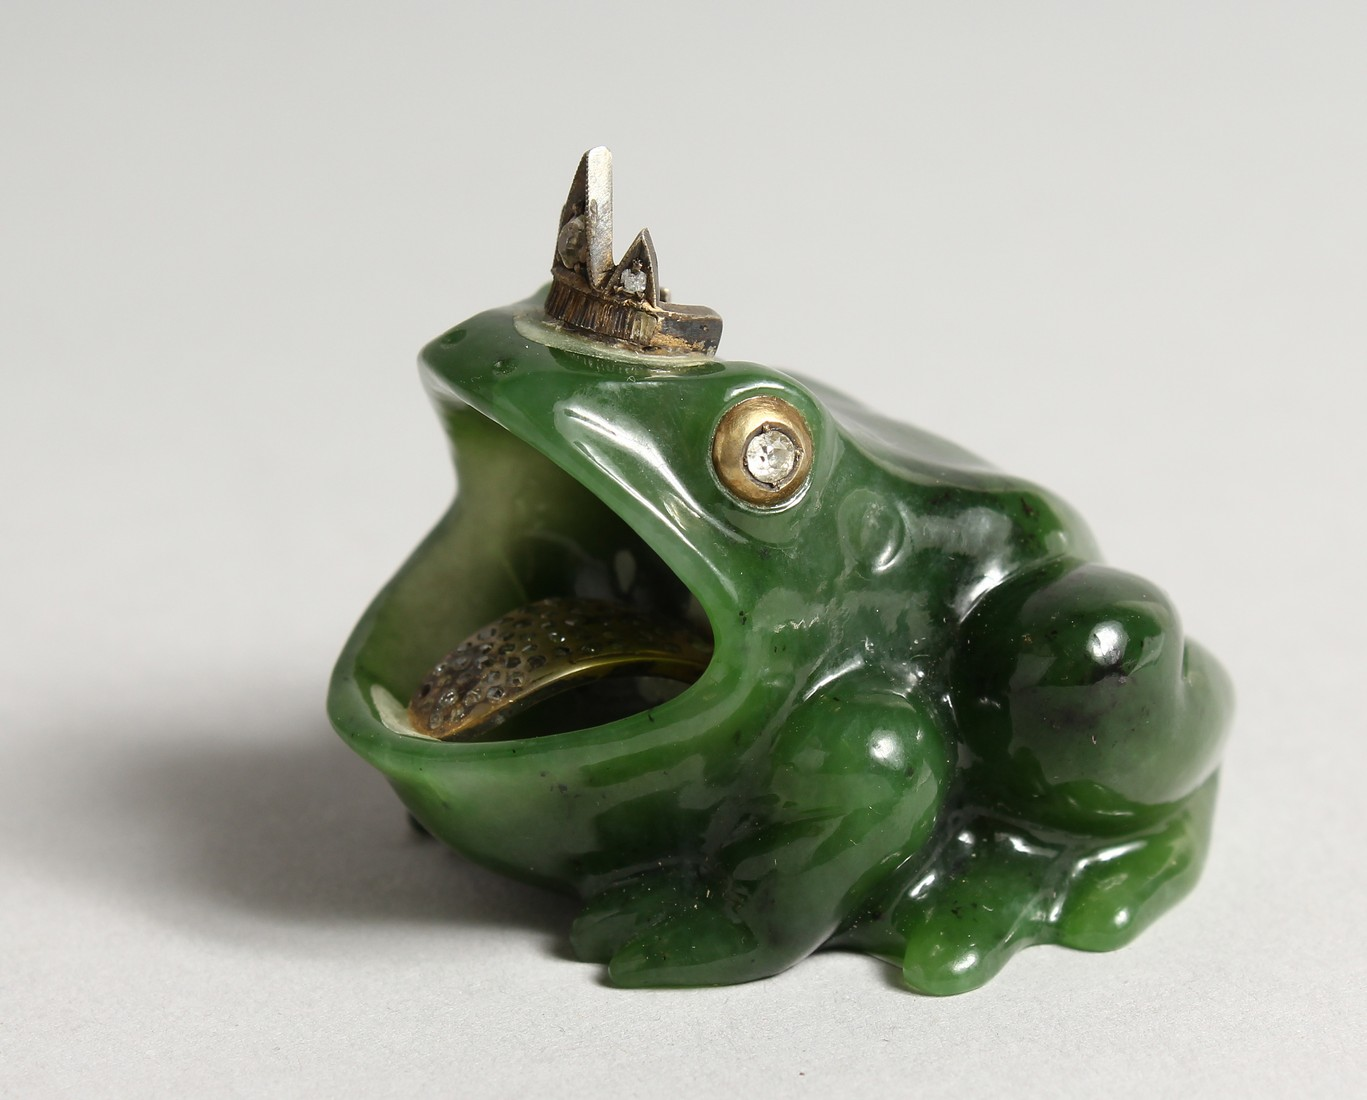 A SUPERB RUSSIAN JADE AND DIAMOND MOUNTED FROG 2ins long